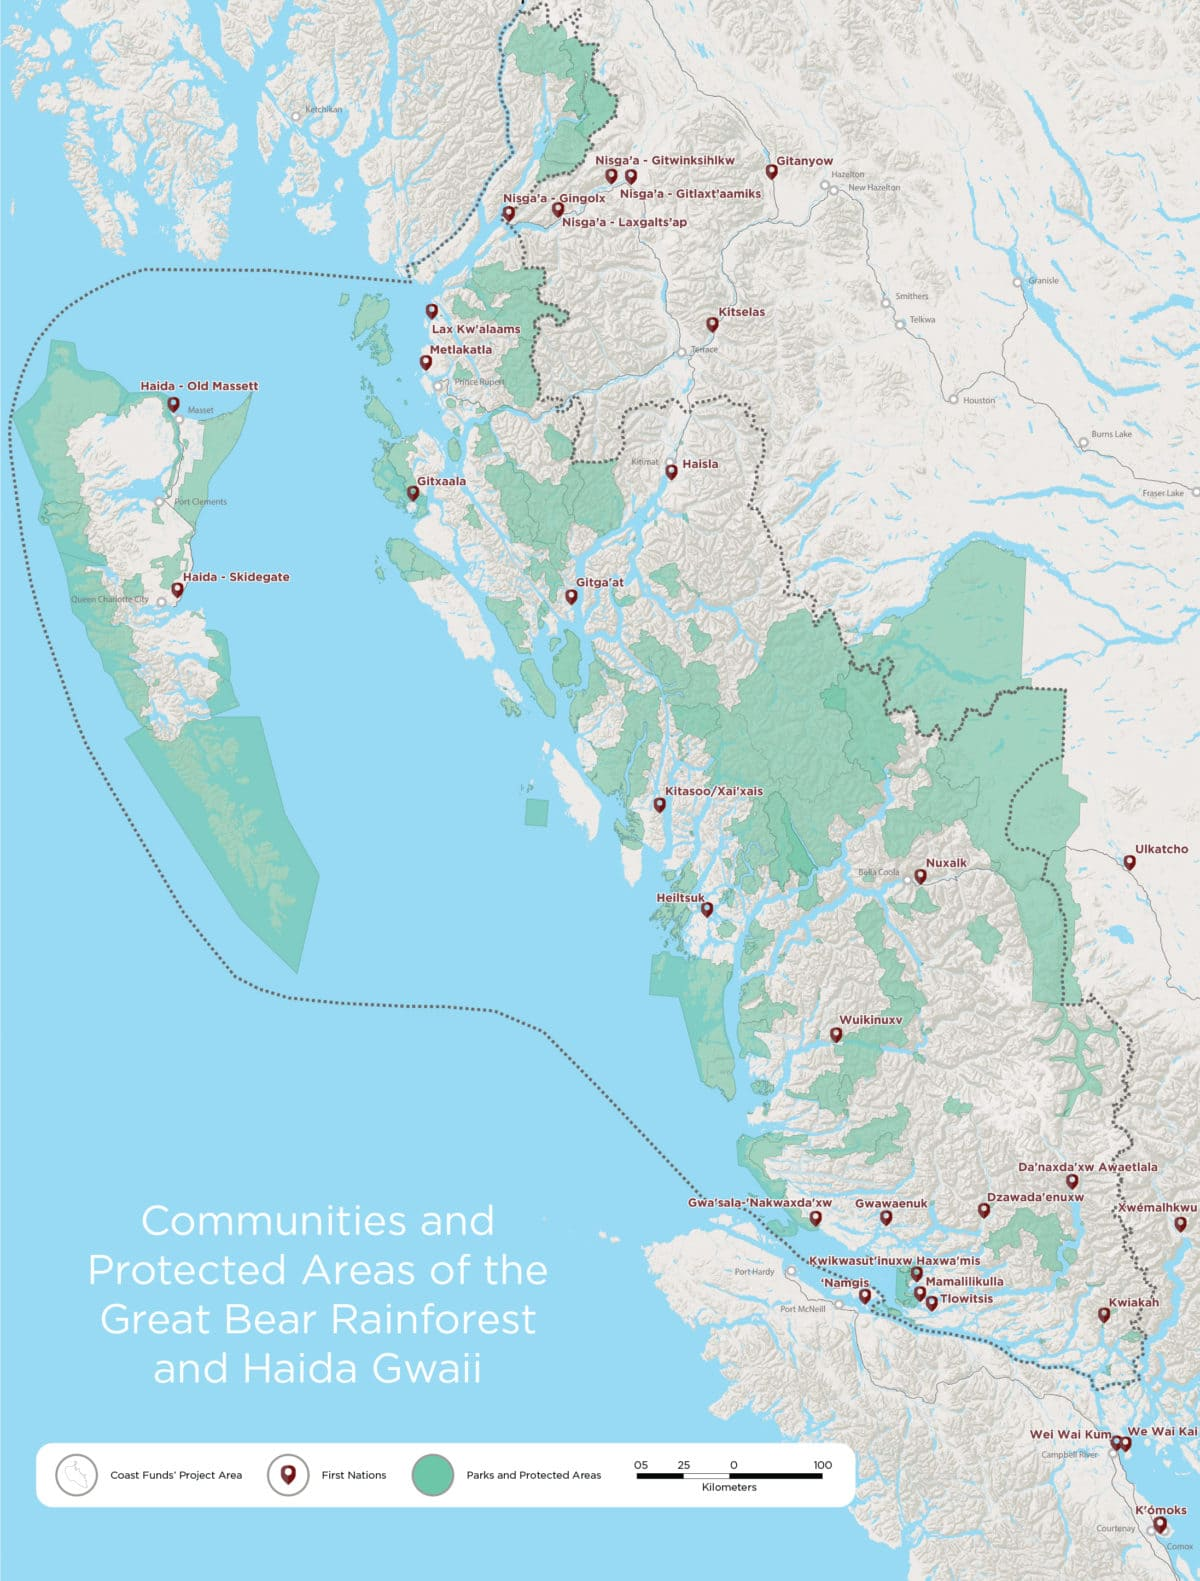 Communities and protected areas of the Great Bear Rainforest and Haida Gwaii